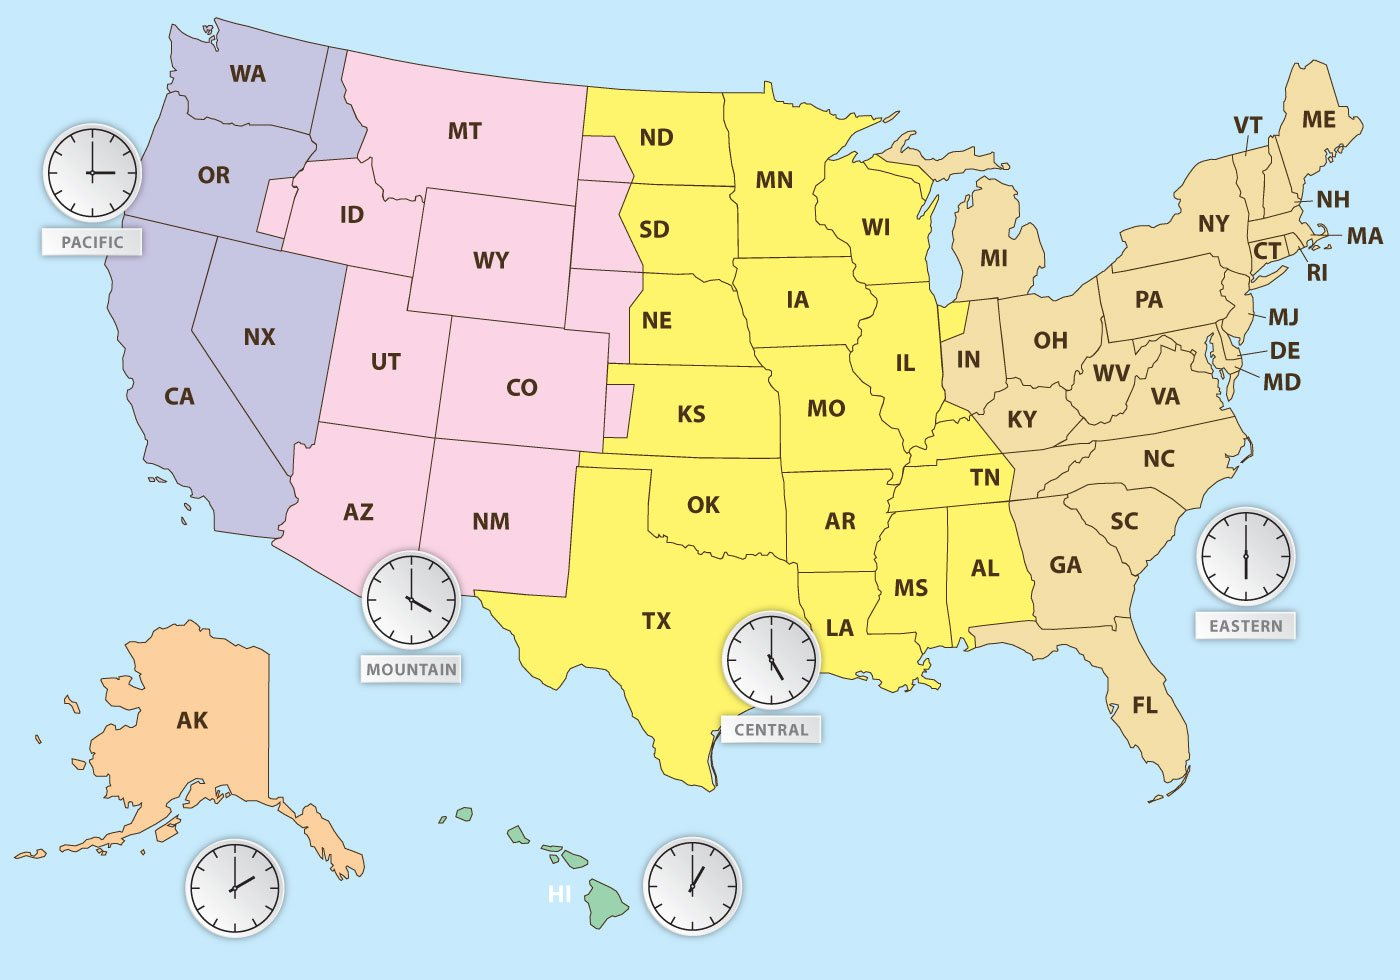 Time Zones Of US Map - Download Free Vector Art, Stock Graphics & Images